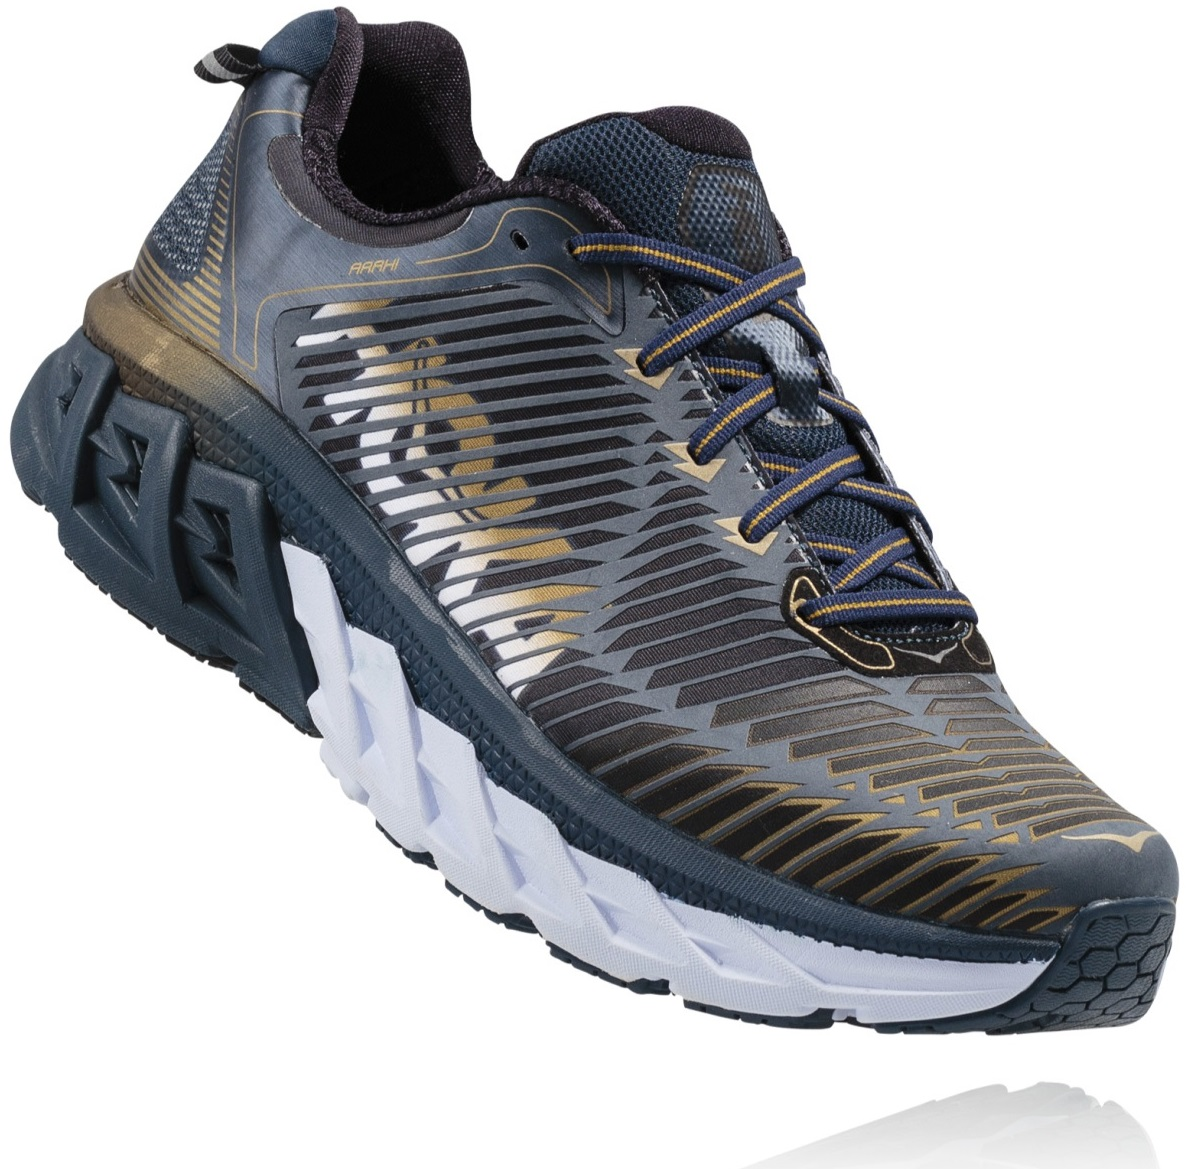 HOKA Men's ARAHI Running Shoes